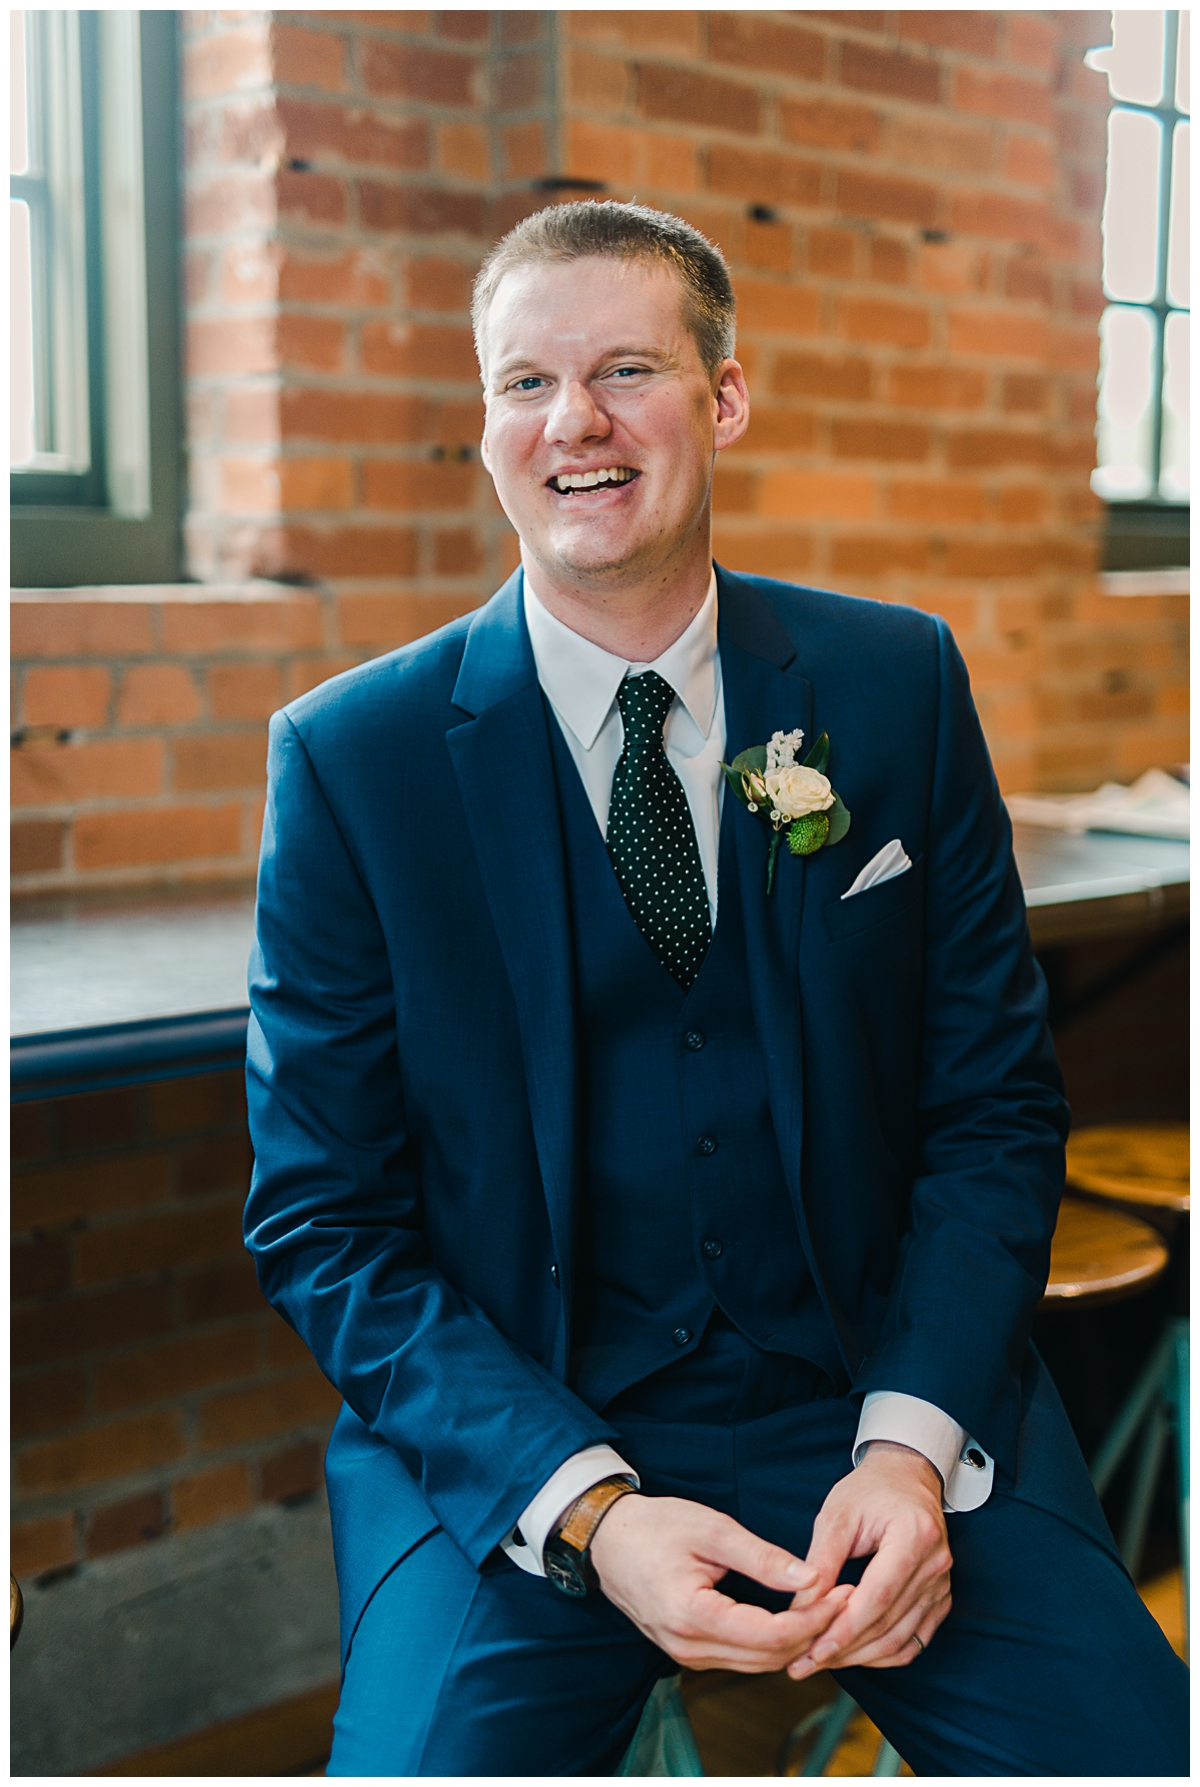 Calgary_Wedding_photographer (4 of 95).jpg